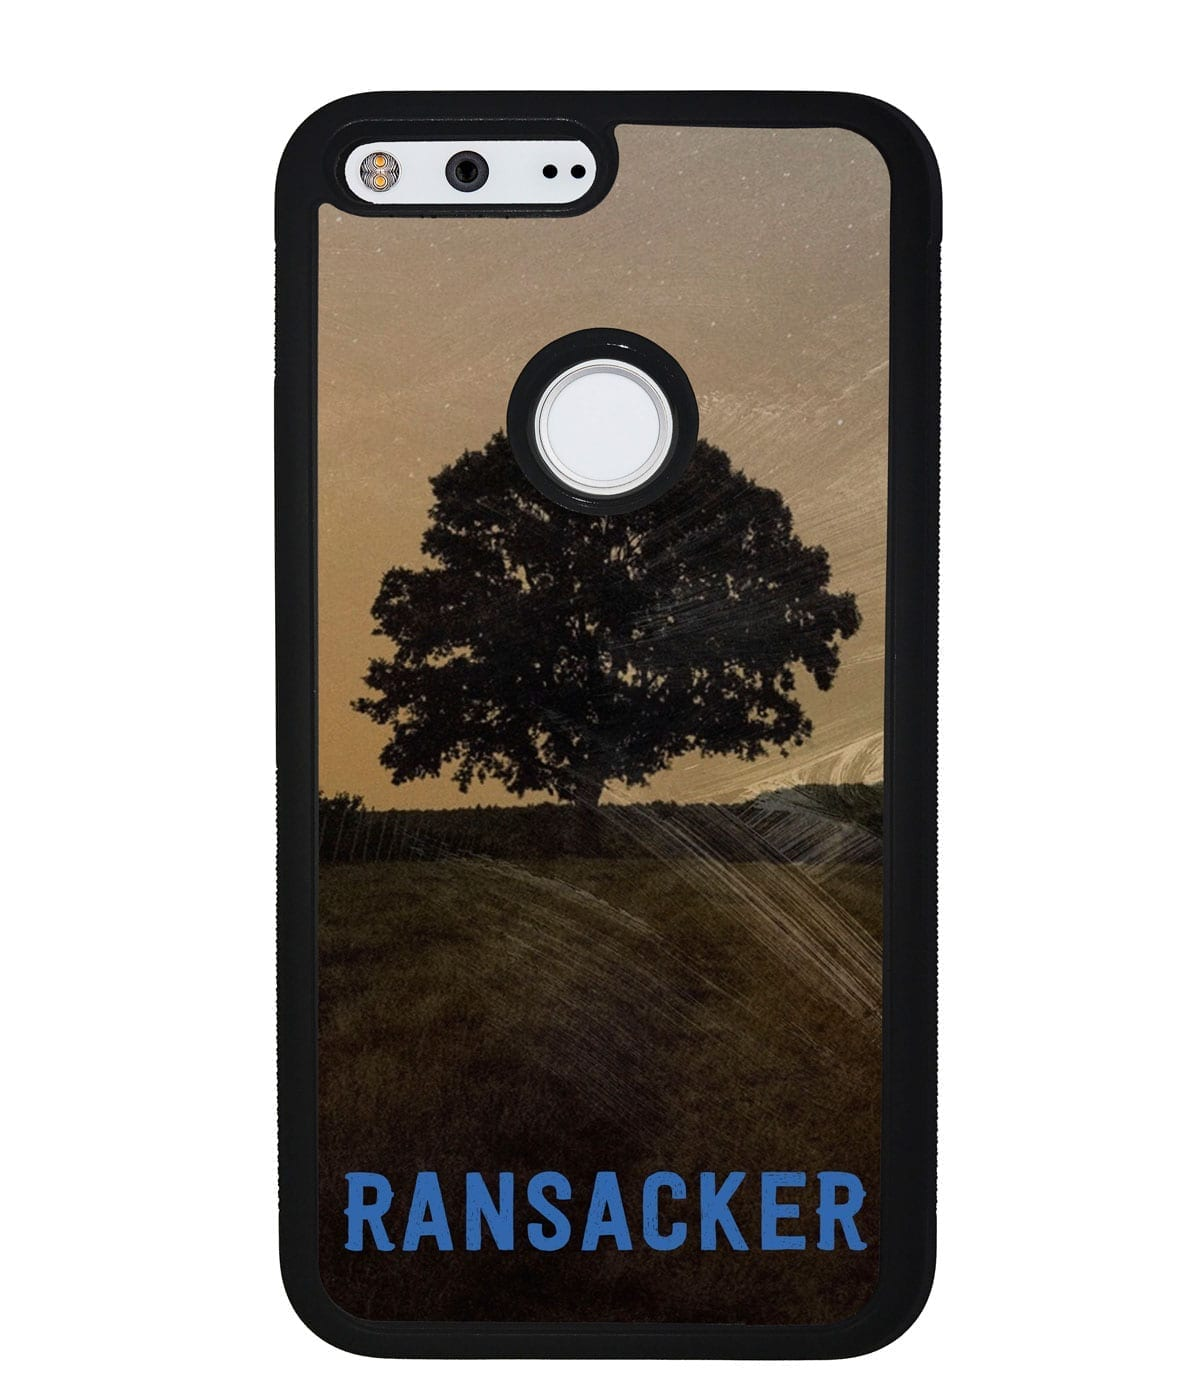 Ransacker Phone Case (Google)